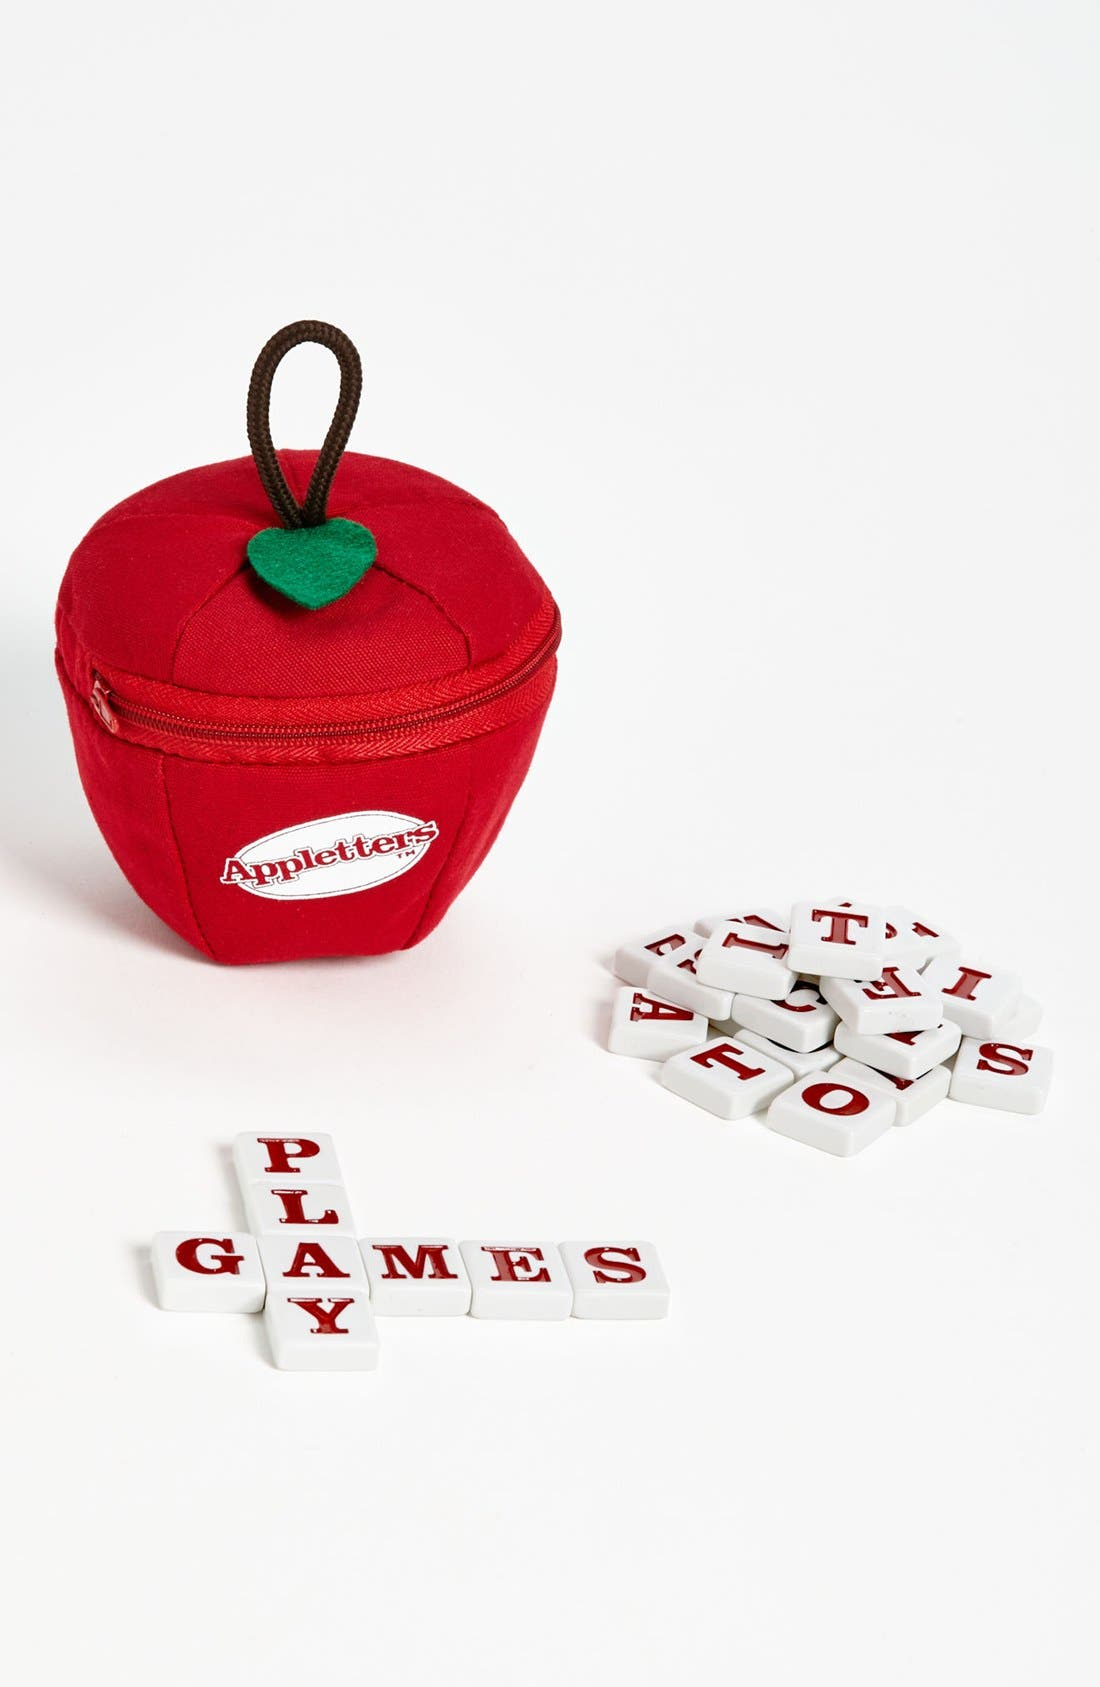 Alternate Image 1 Selected - Bananagrams 'Appletters' Game